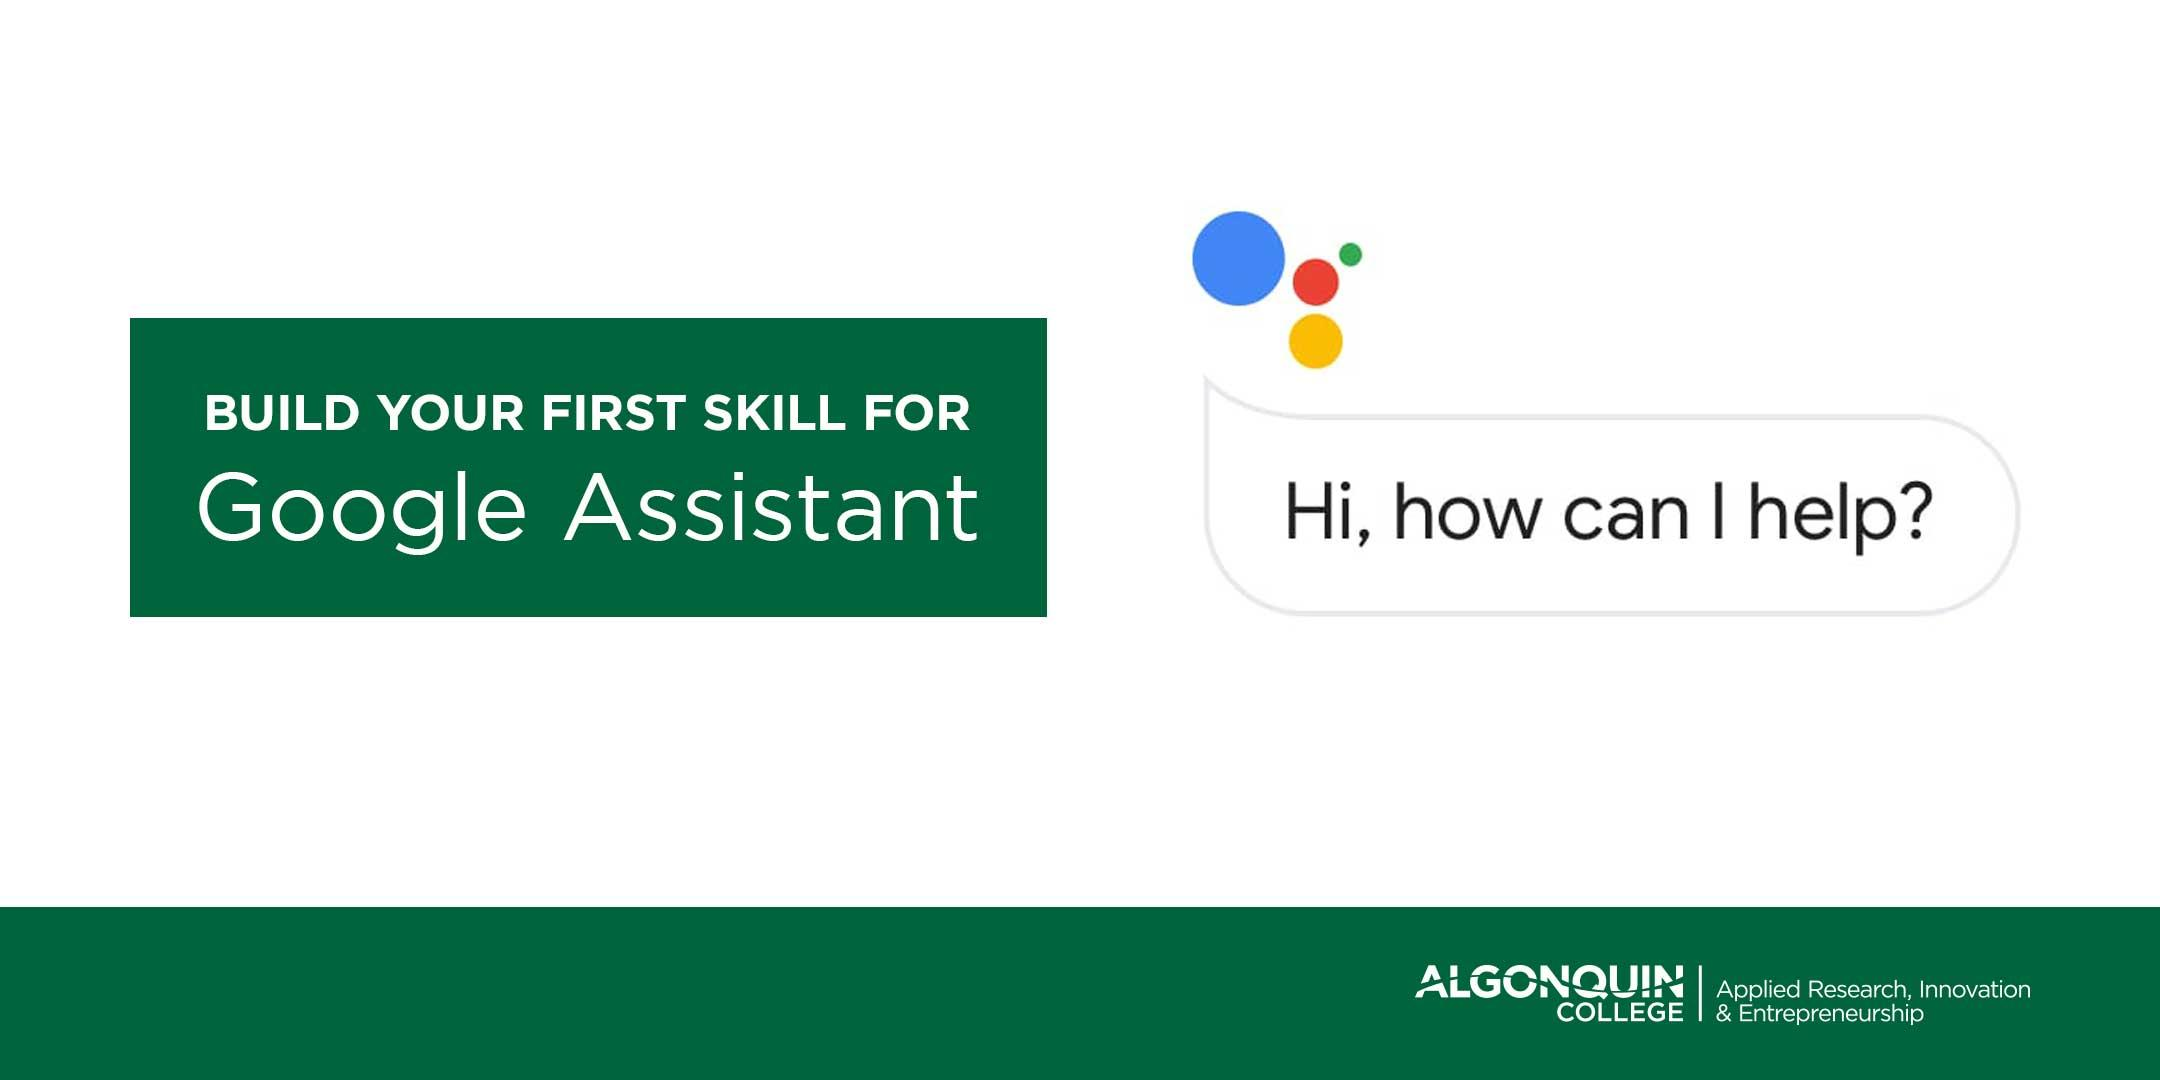 Algonquin College - DAC: Build Your First Skill ForGoogle Assistant